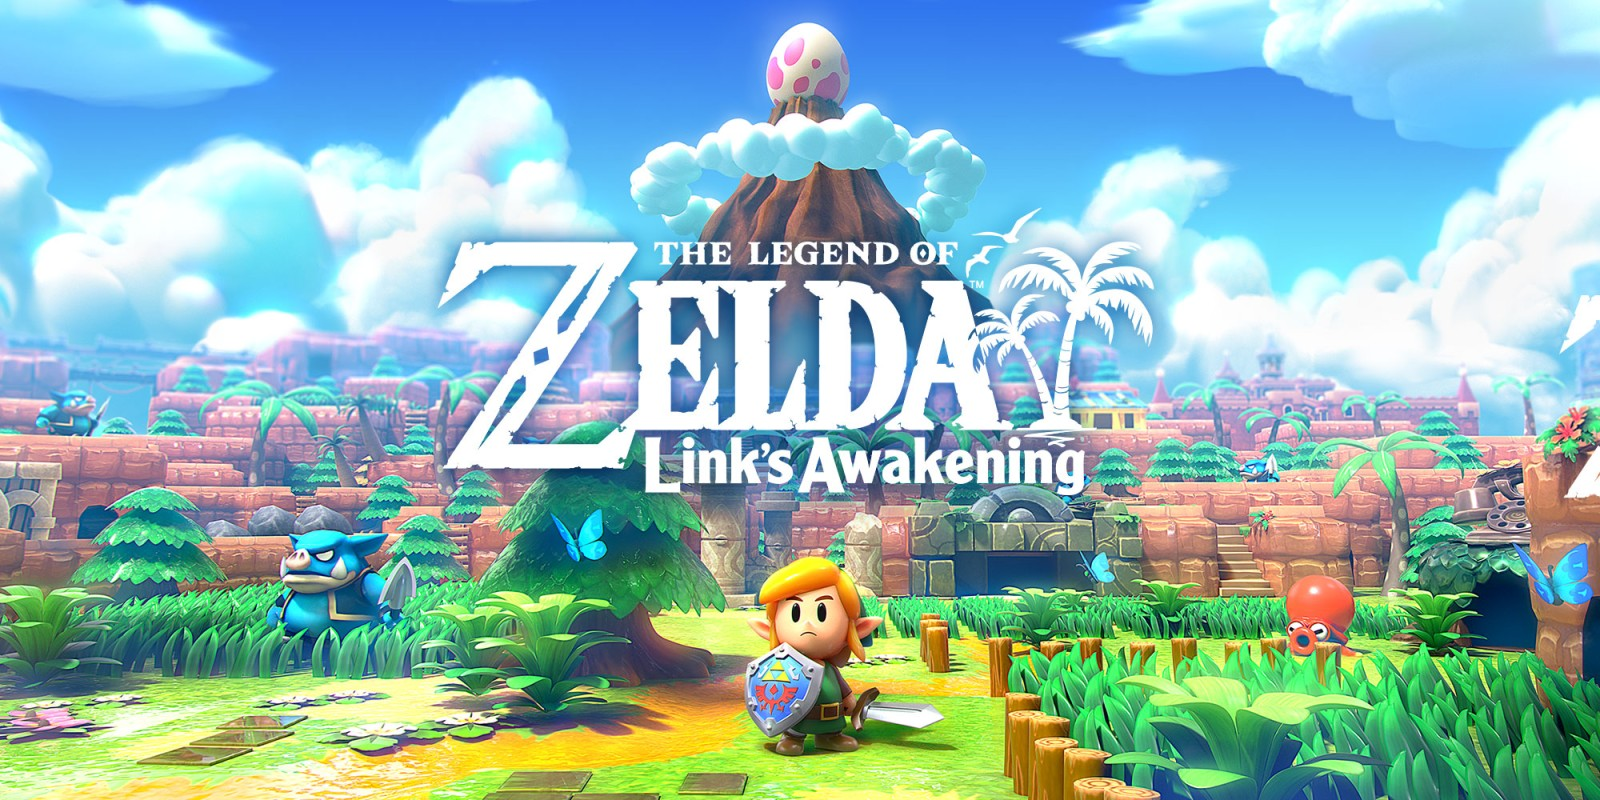 The Charm, Nostalgia, and Limitations of Link's Awakening on Switch